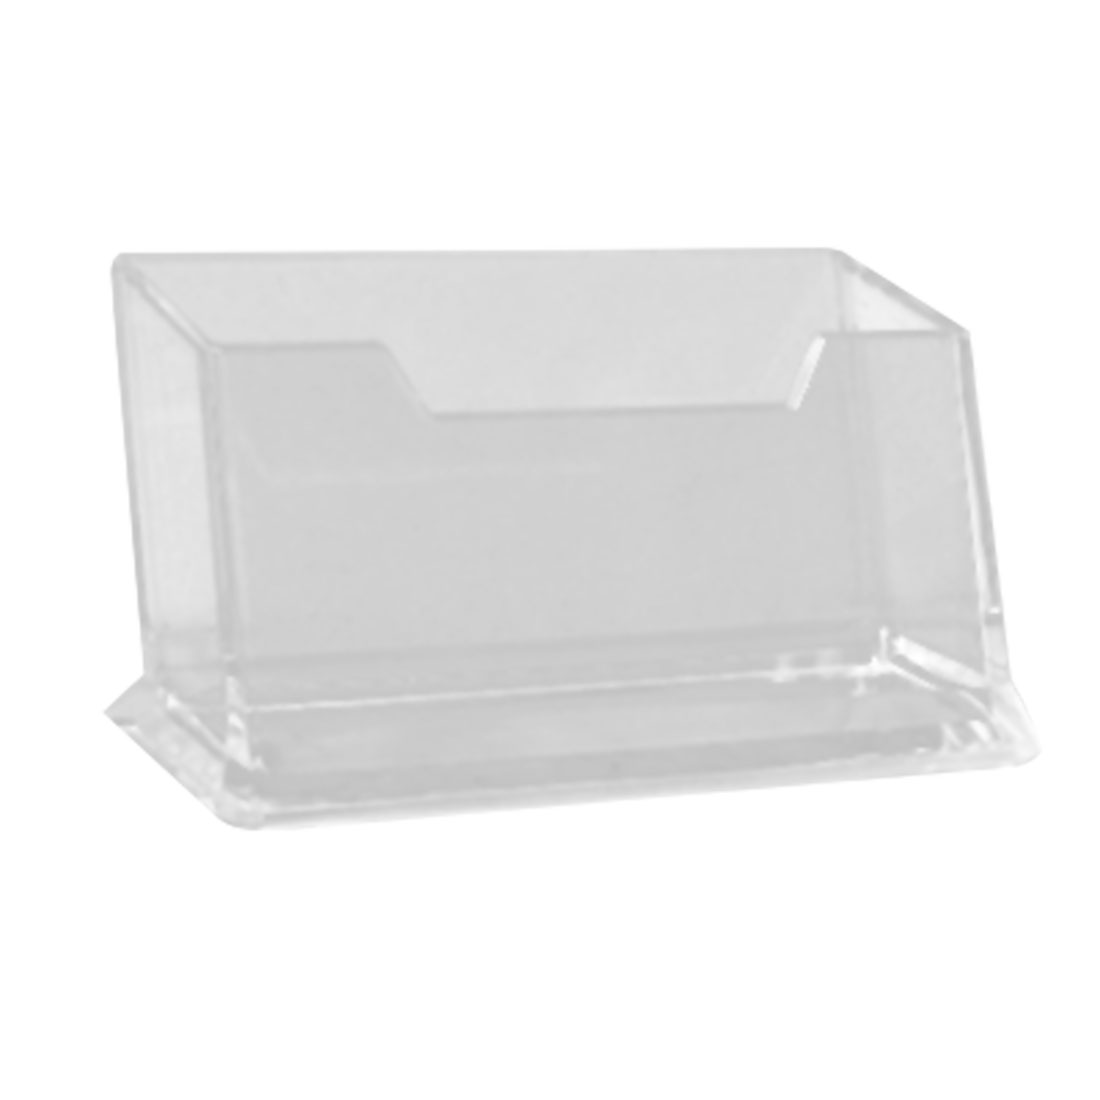 Hard Plastic Transparent Desk Business Name Card Holder